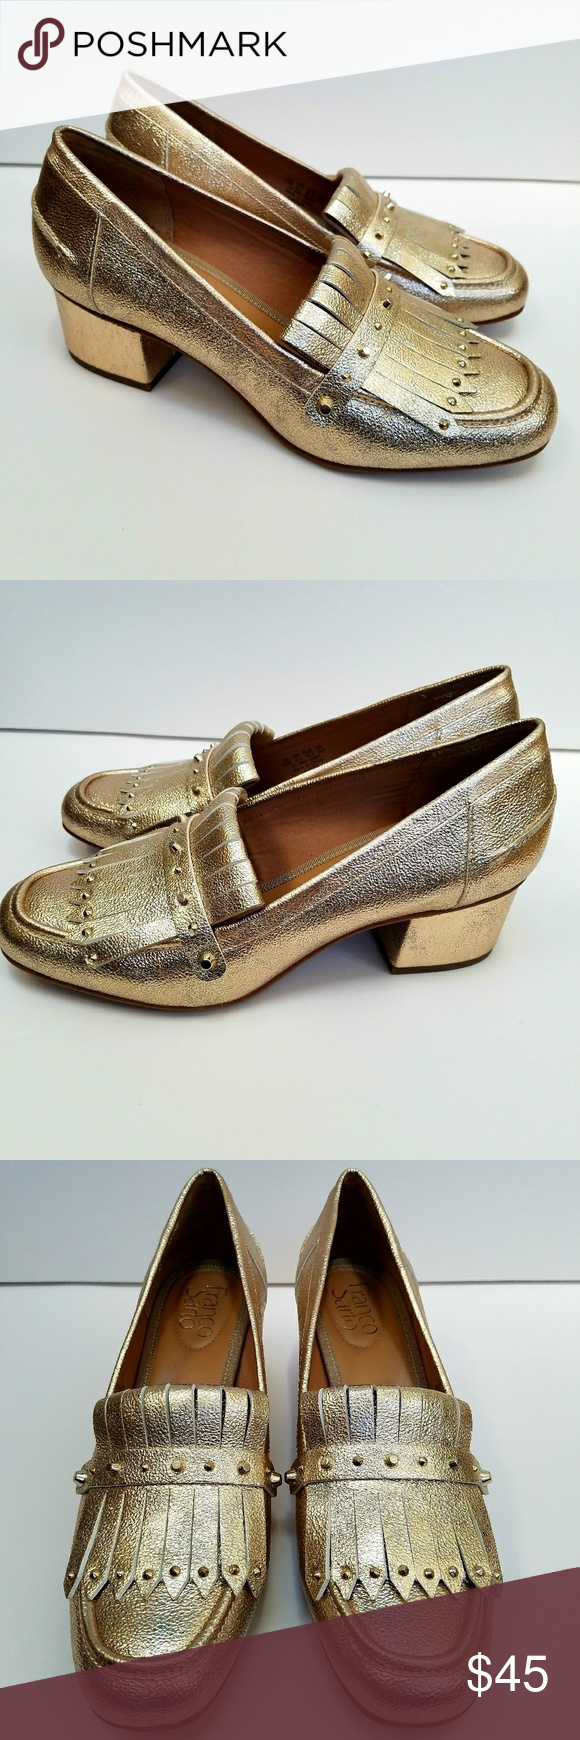 6f8af6a048d NWOB Franco Sarto Lauryn block heeled loafers 8.5 Brand new without box.  Never worn.